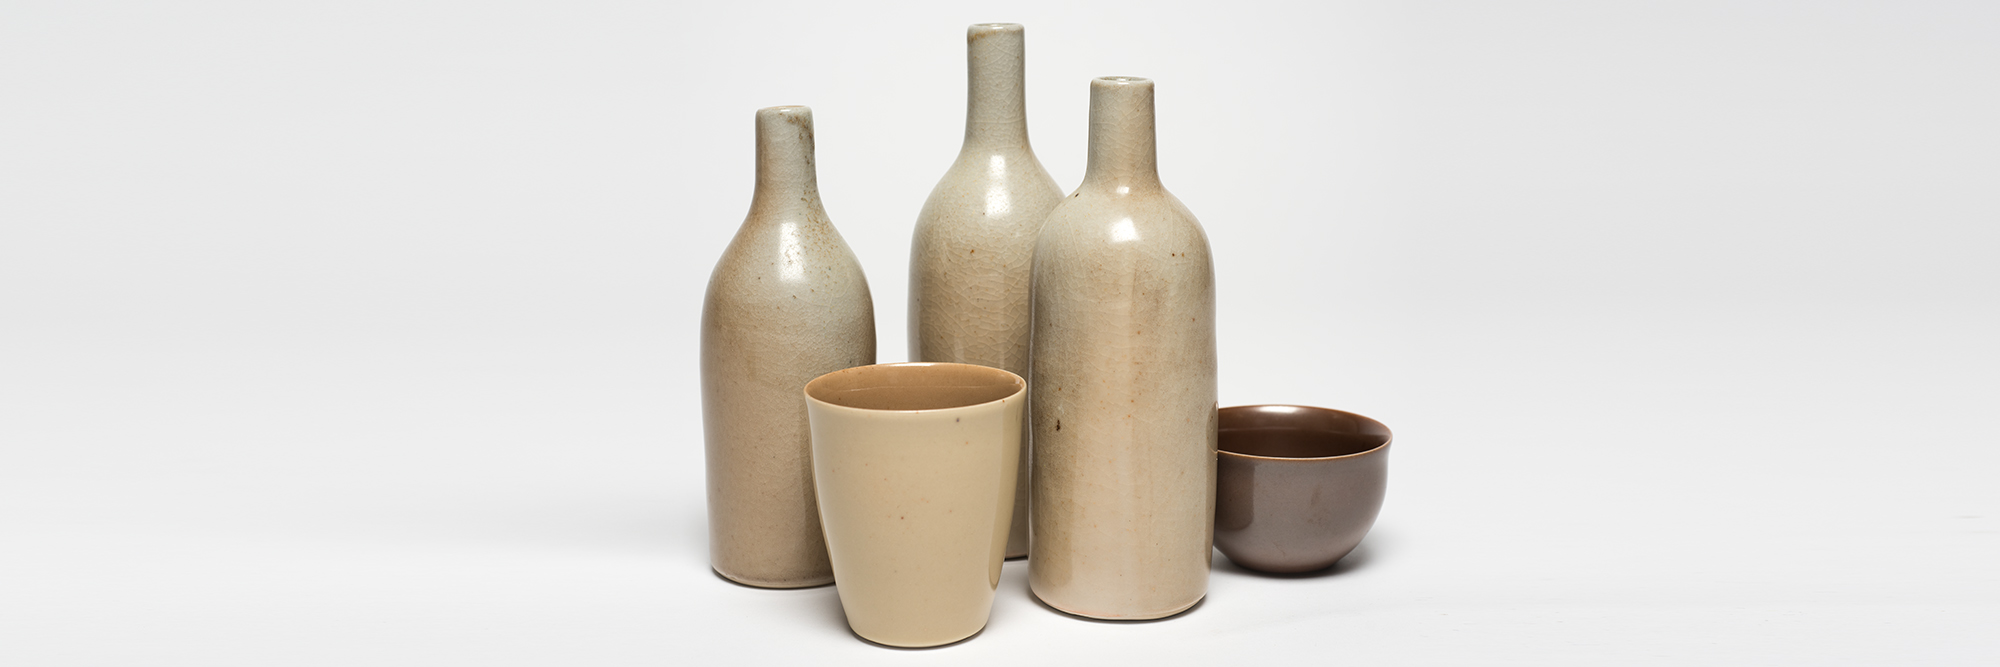 Gwyn Hanssen Pigott, Still Life – three bottles, bowl and beaker, 1992, glazed porcelain. Collection Bendigo Art Gallery. Image reproduction courtesy of the estate of Gwyn Hanssen Pigott and Sophie Gannon Gallery. Photo: Ian Hill